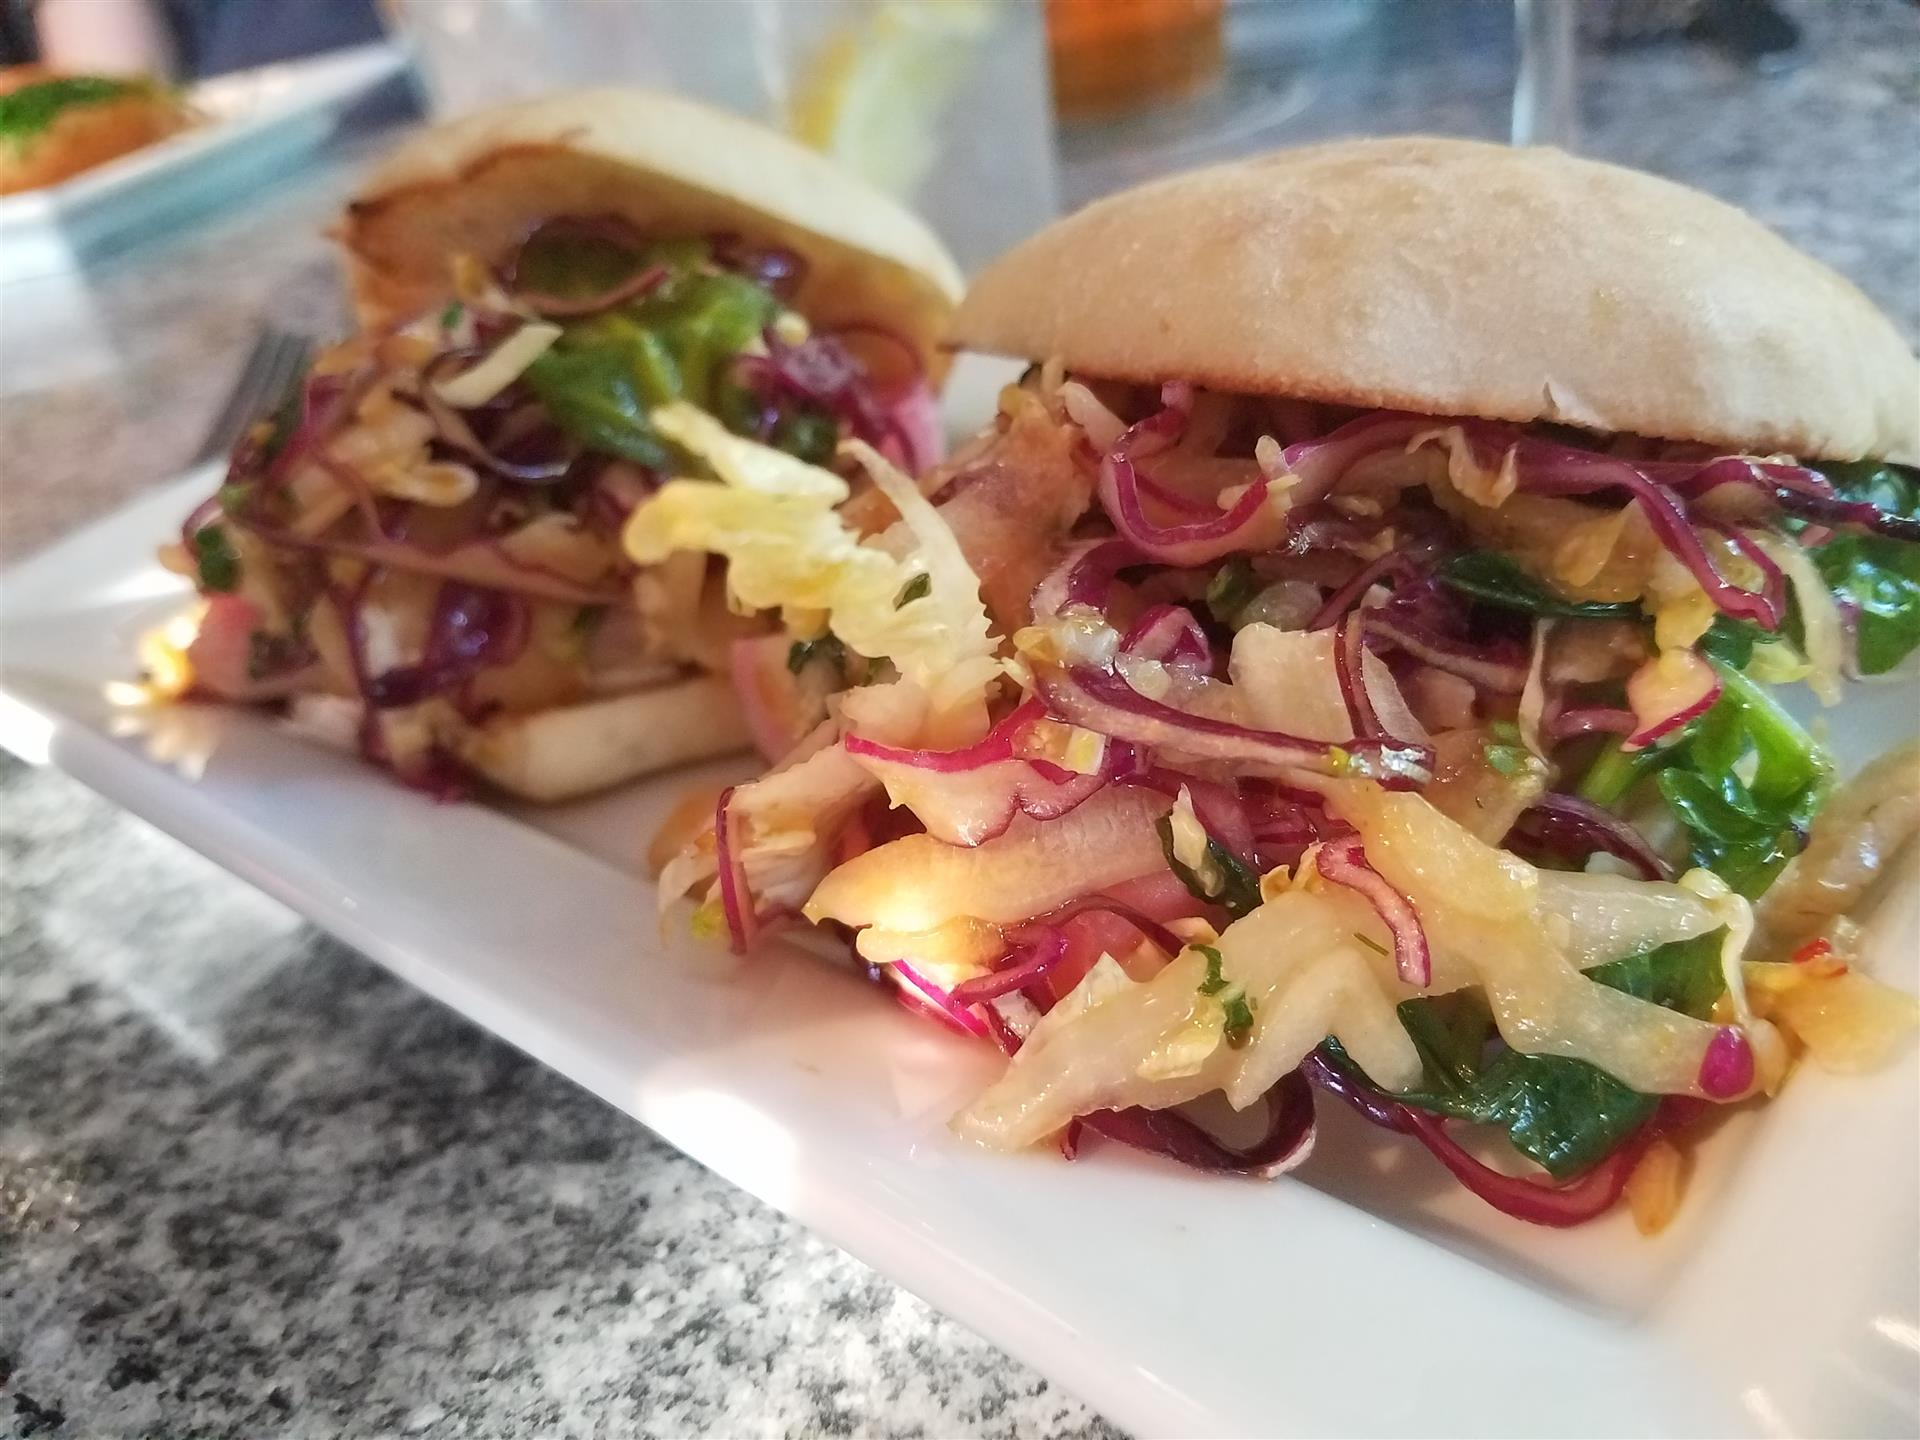 Two buns filled with heaping sauteed vegetbles and srispy slaw served on a plate